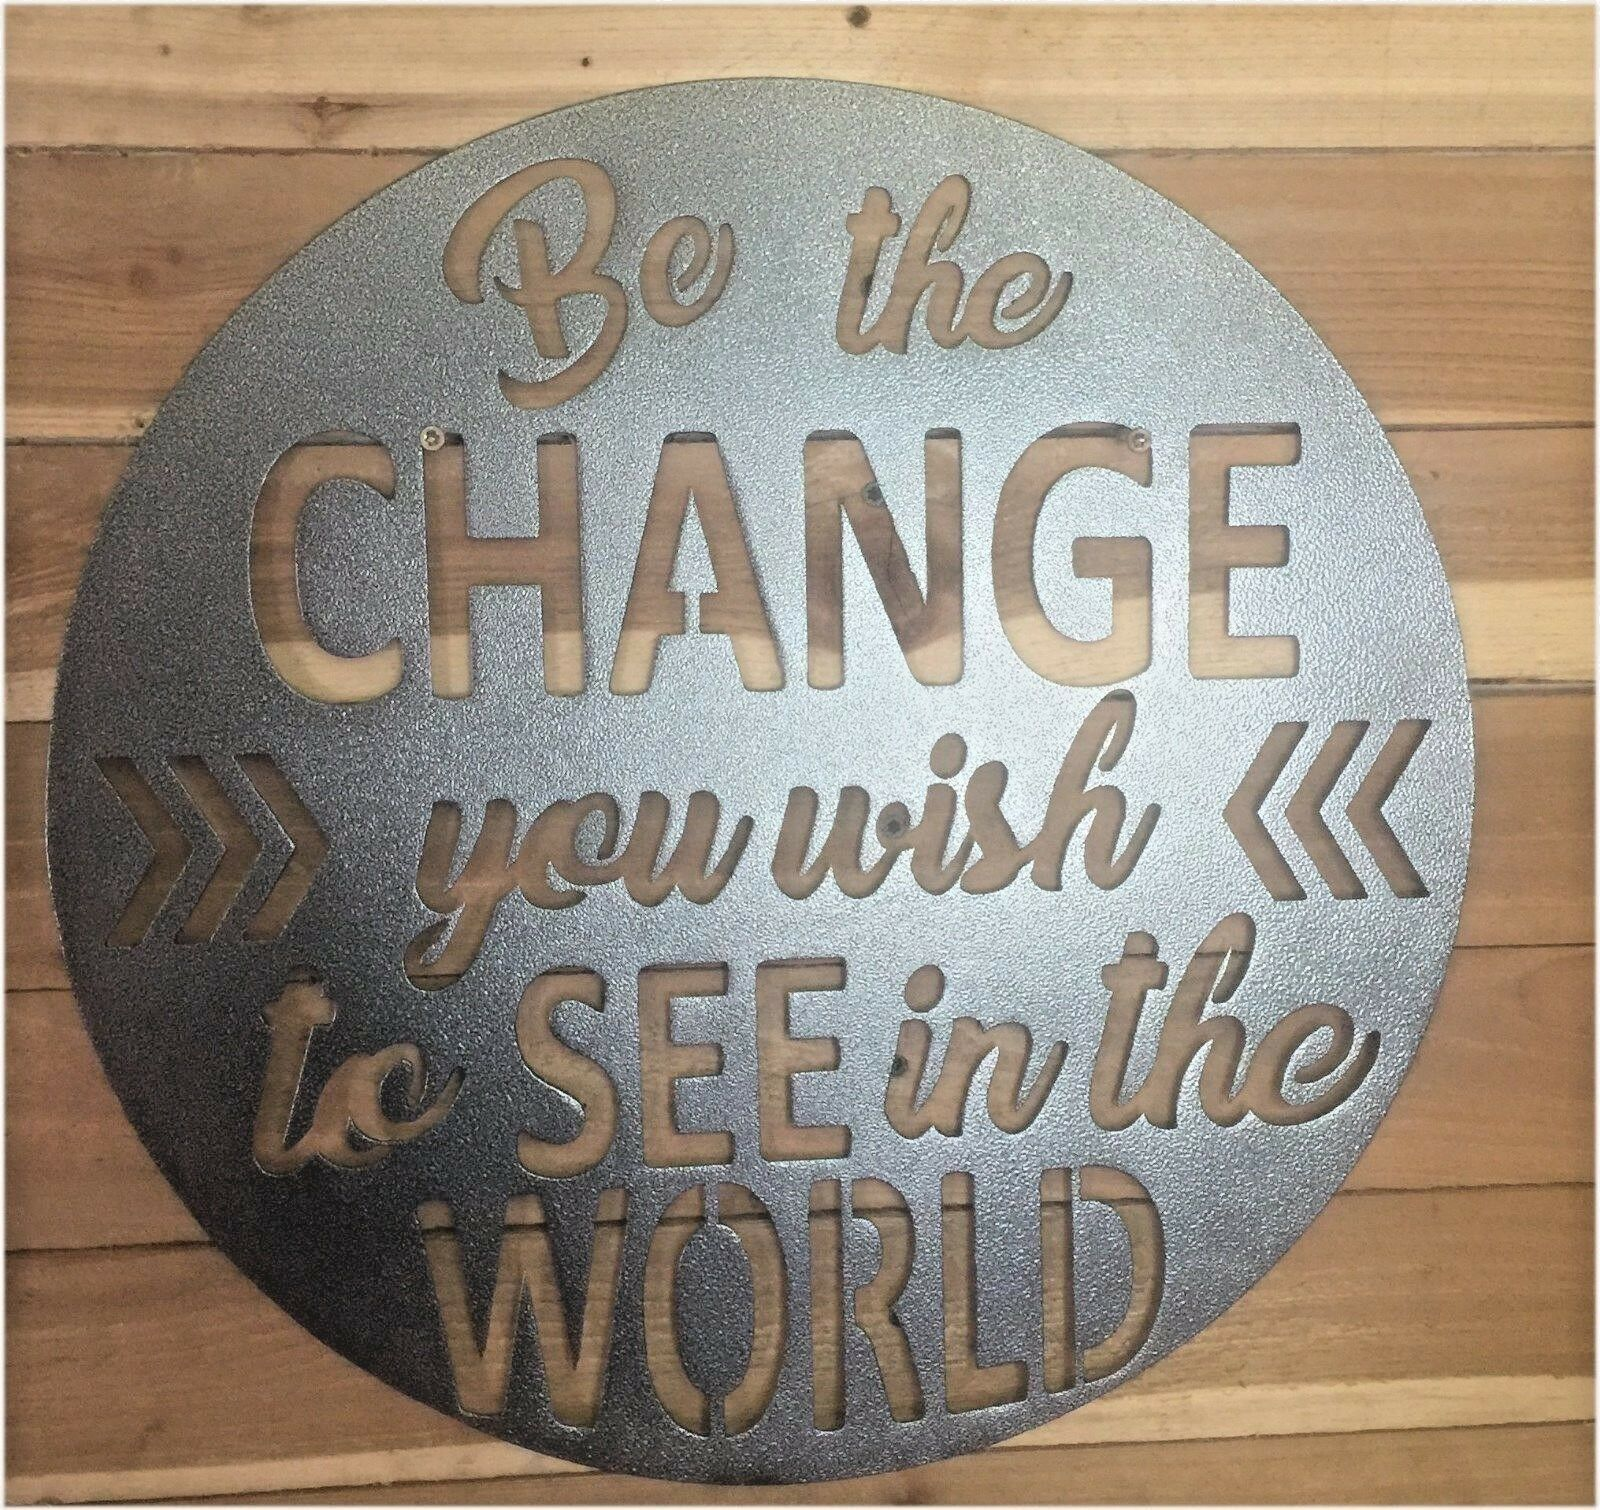 BE THE CHANGE YOU WISH TO SEE IN THE WORLD 18 , SIGN  Hand Made in Waco Texas